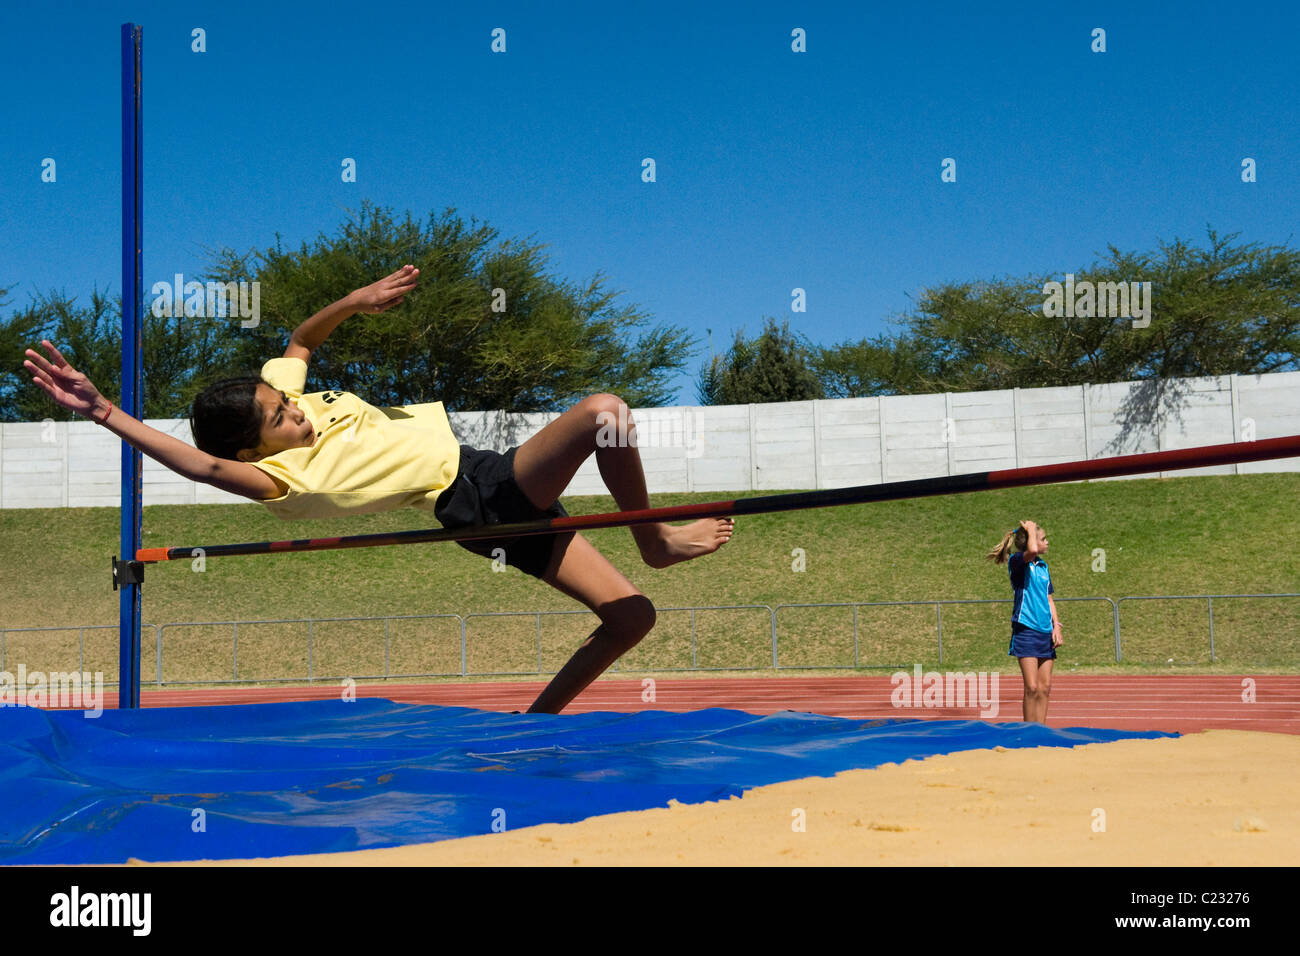 South African school girl in a high jump competition, Bellvile, Western Cape, South Africa - Stock Image